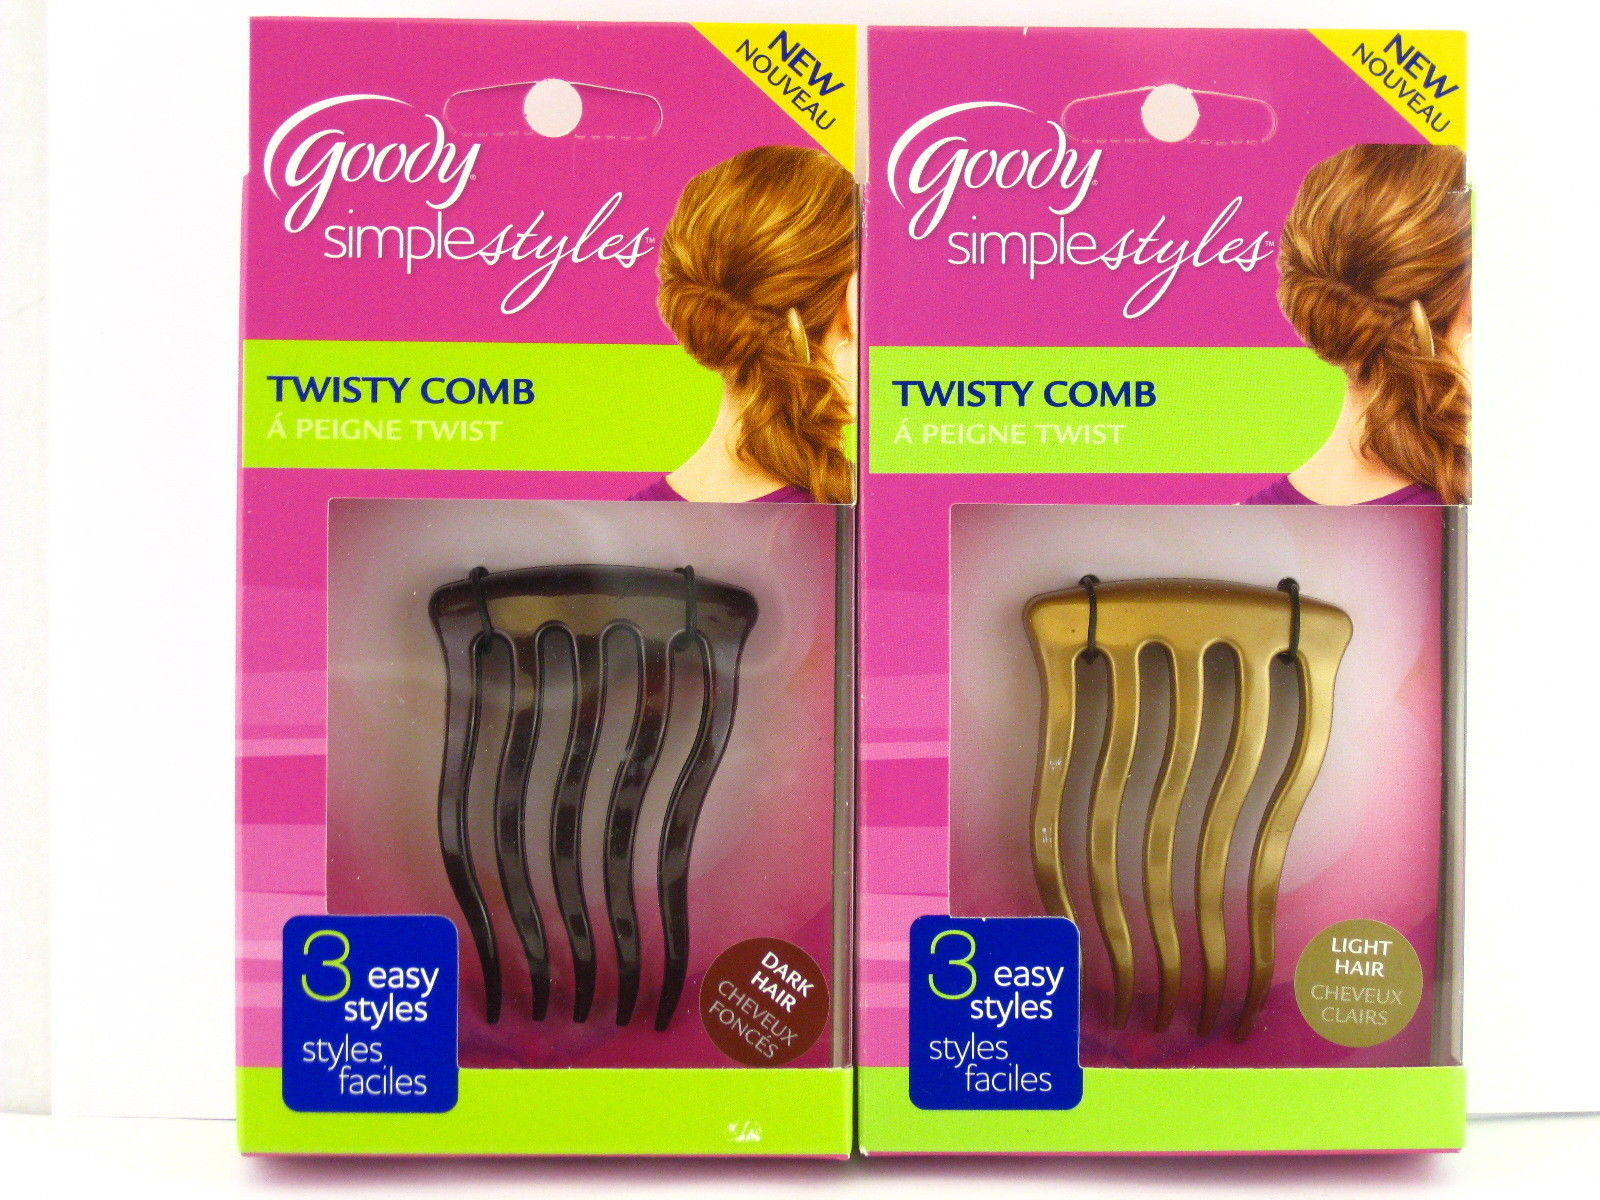 Goody Simple Styles Twisty Comb 04121 6 99